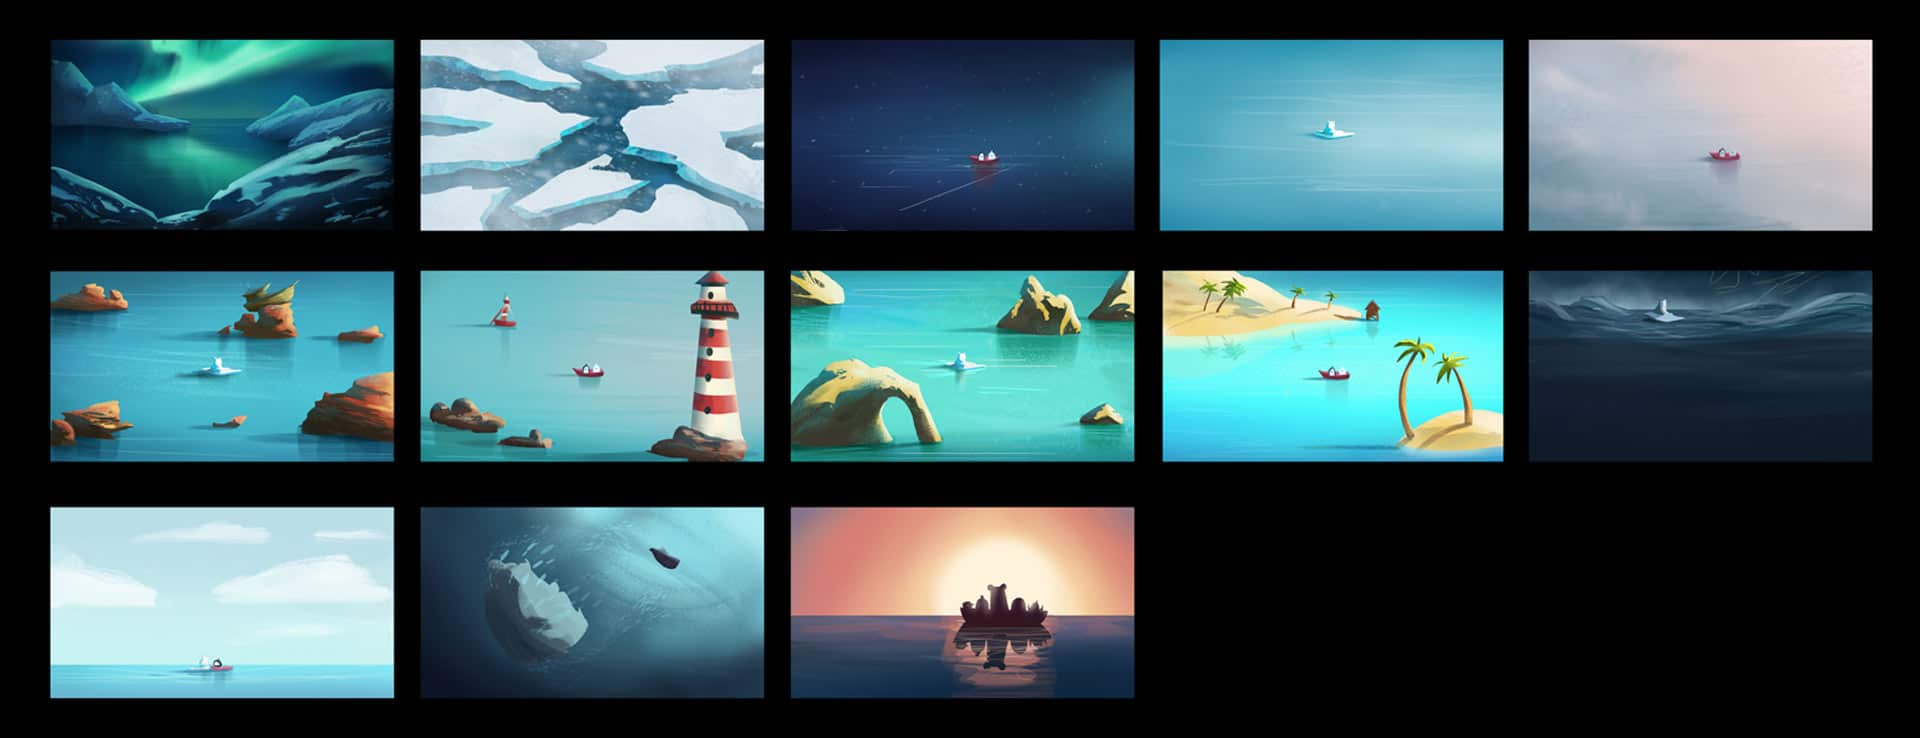 Color script for animated advertisment telling story about bear and penguin being tear apart for Pigeon Studio by Jakub Cichecki